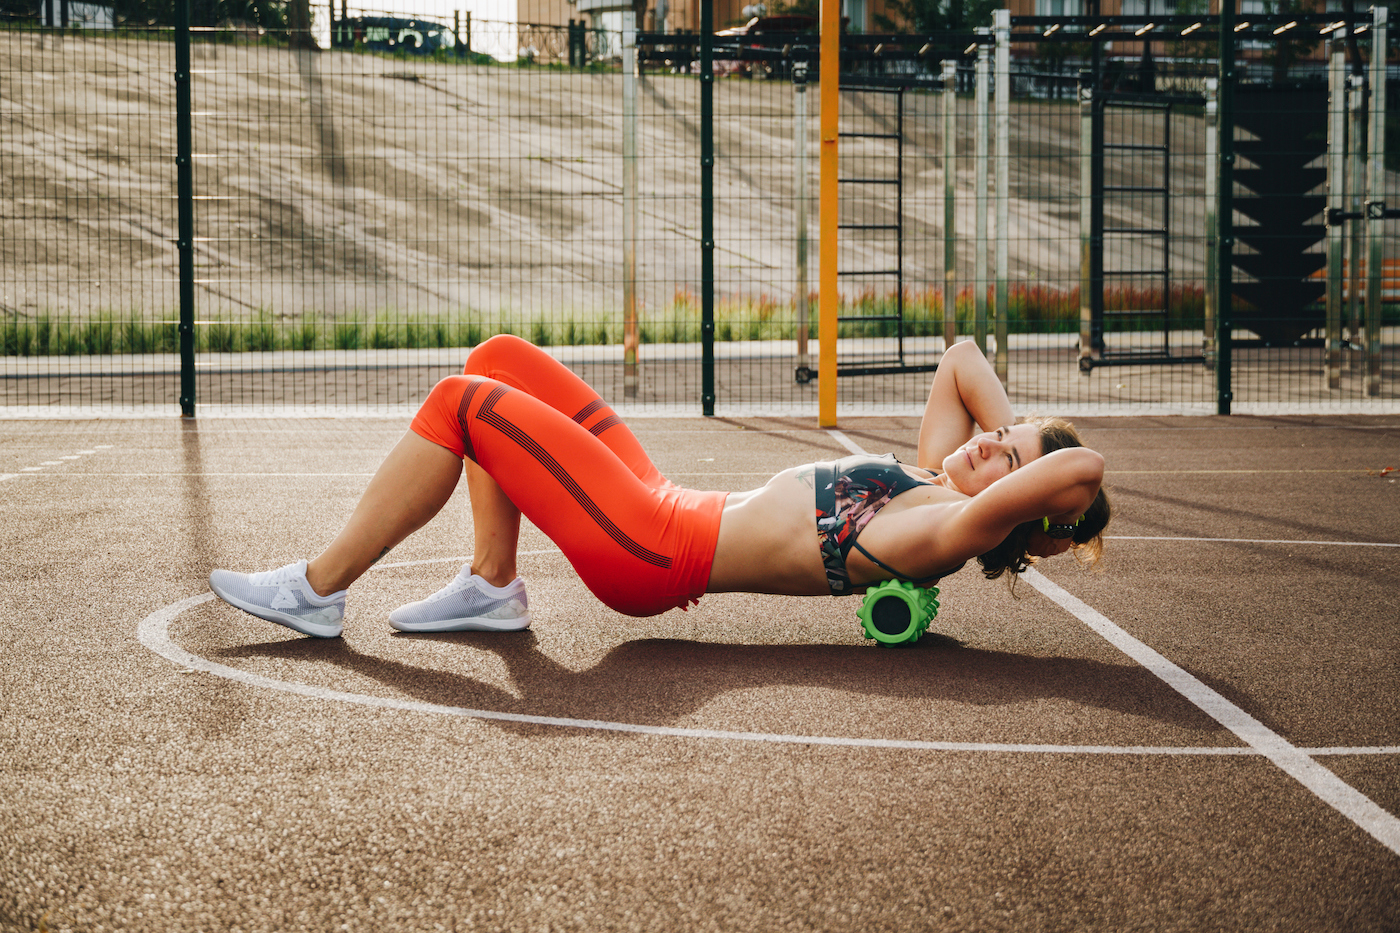 Thumbnail for 6 next-level foam rollers that nix achey muscles with heat, vibration, and so much more